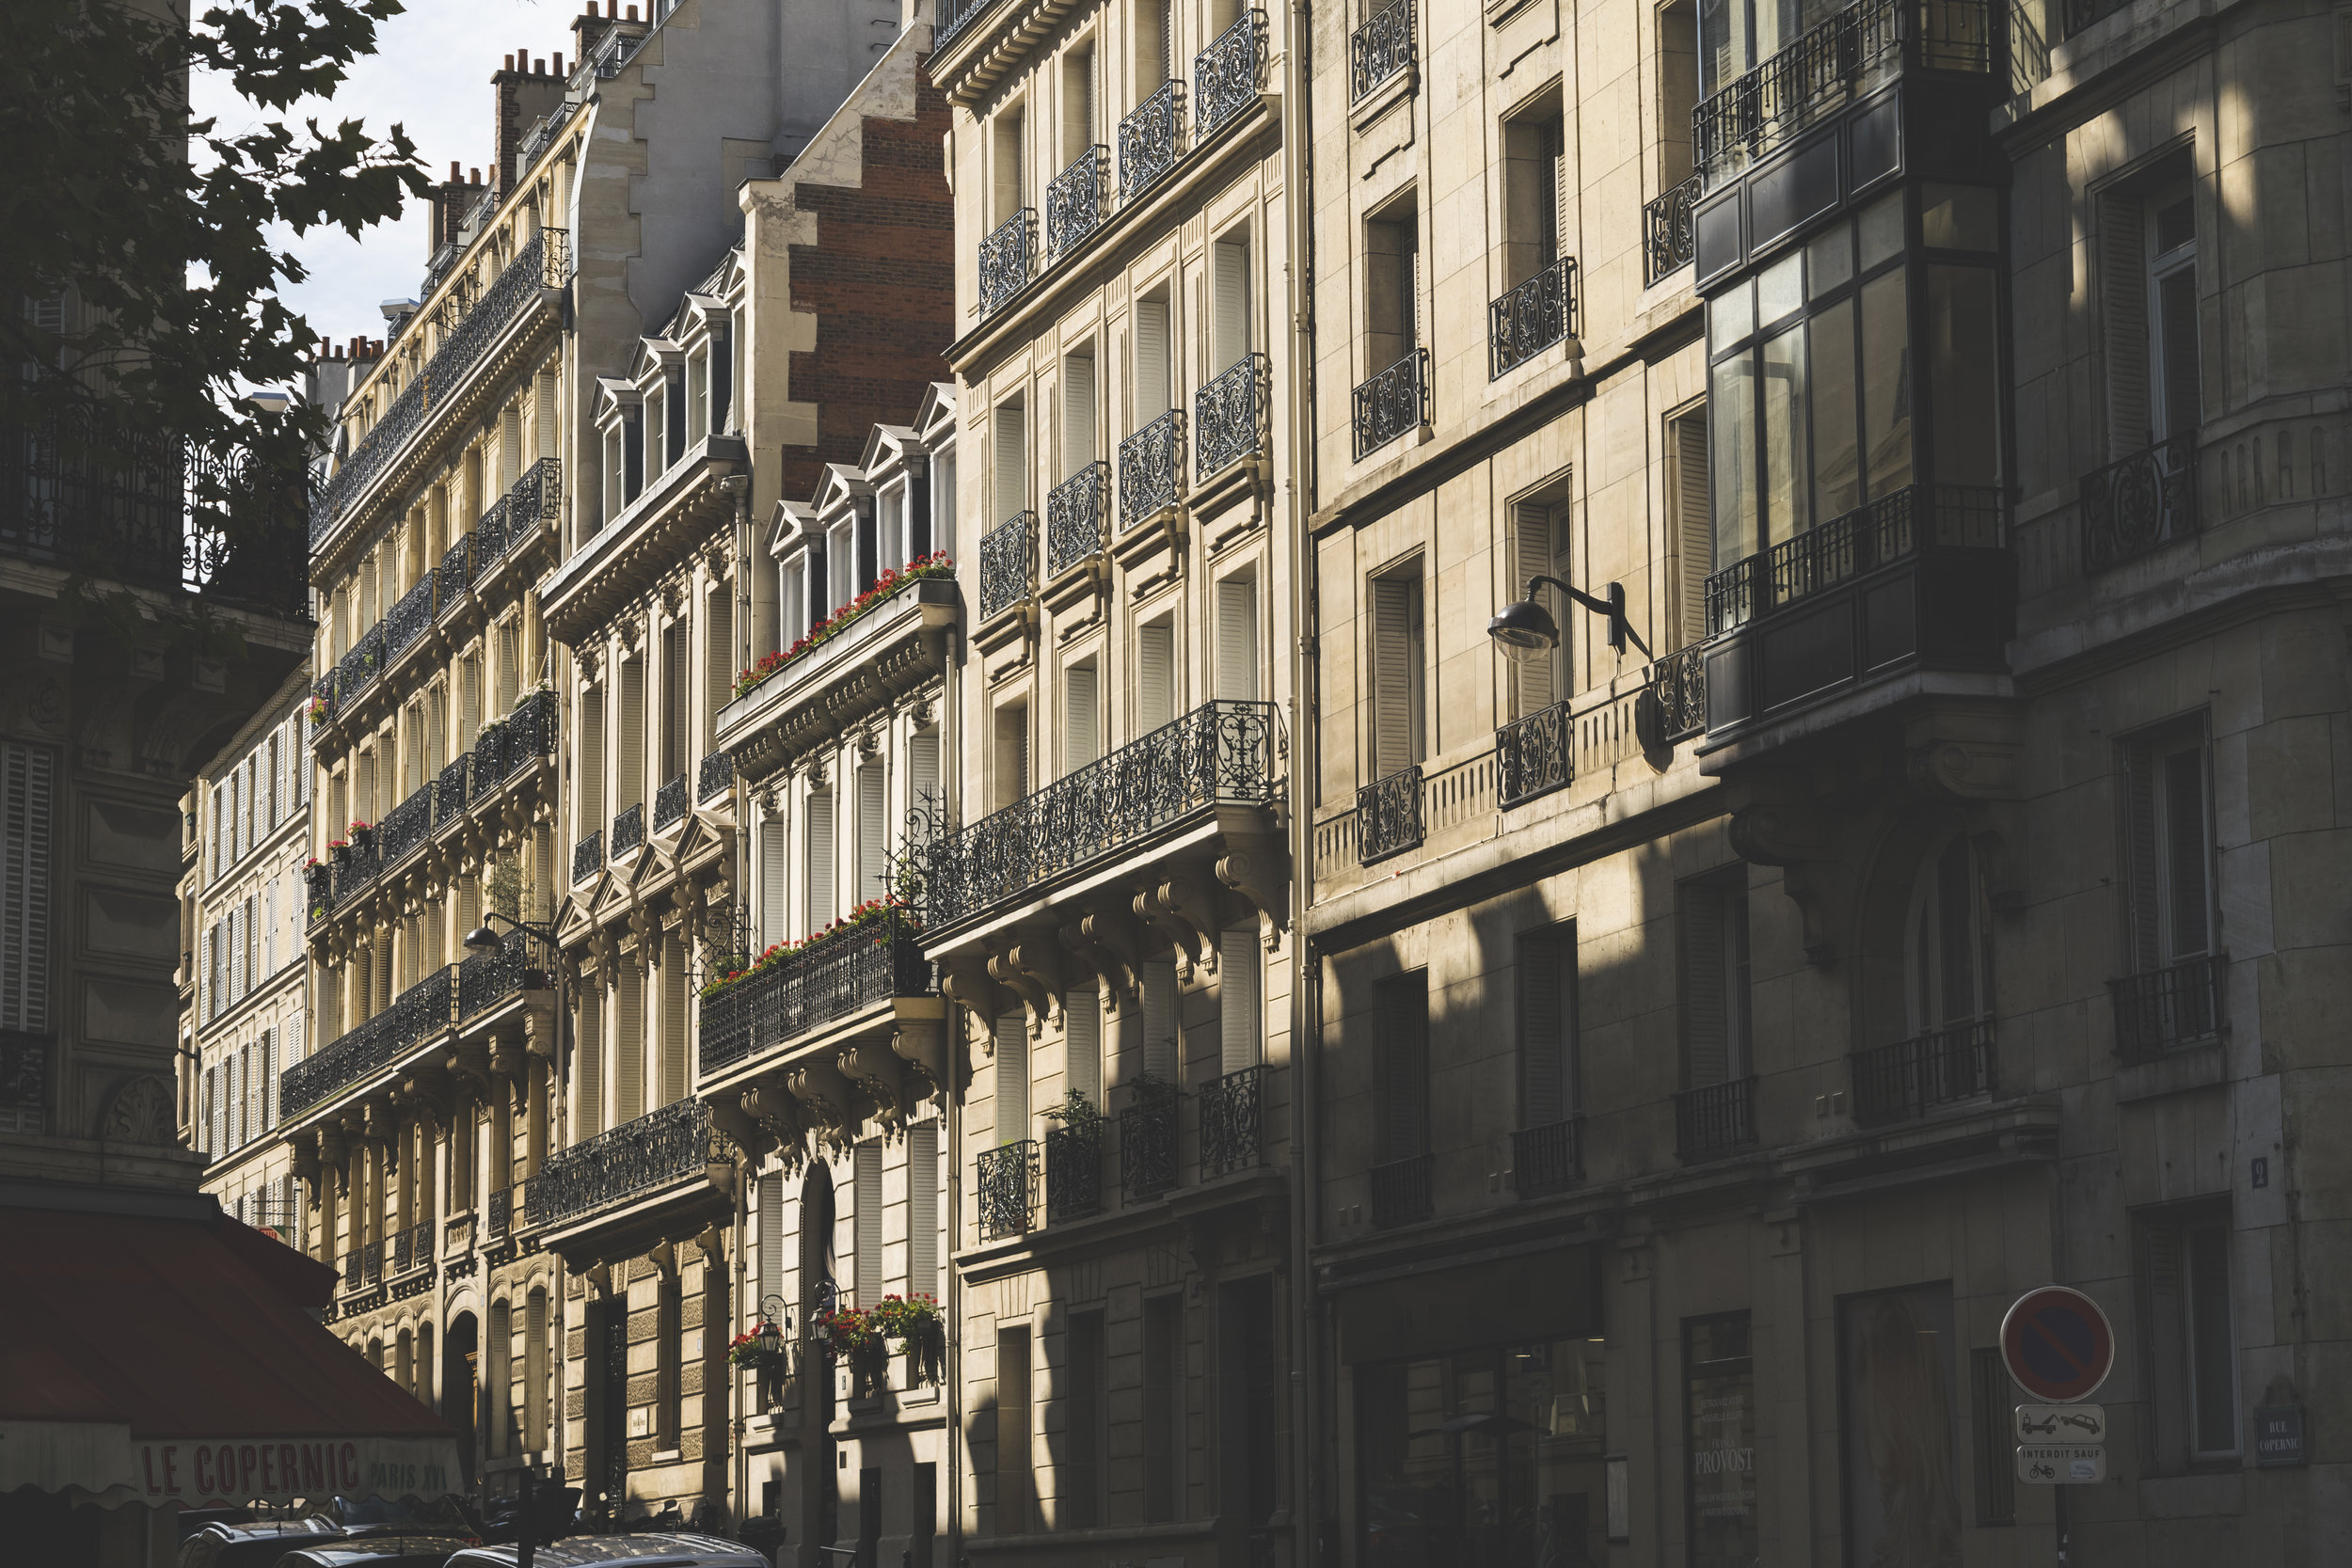 16th Arrondissement, Paris